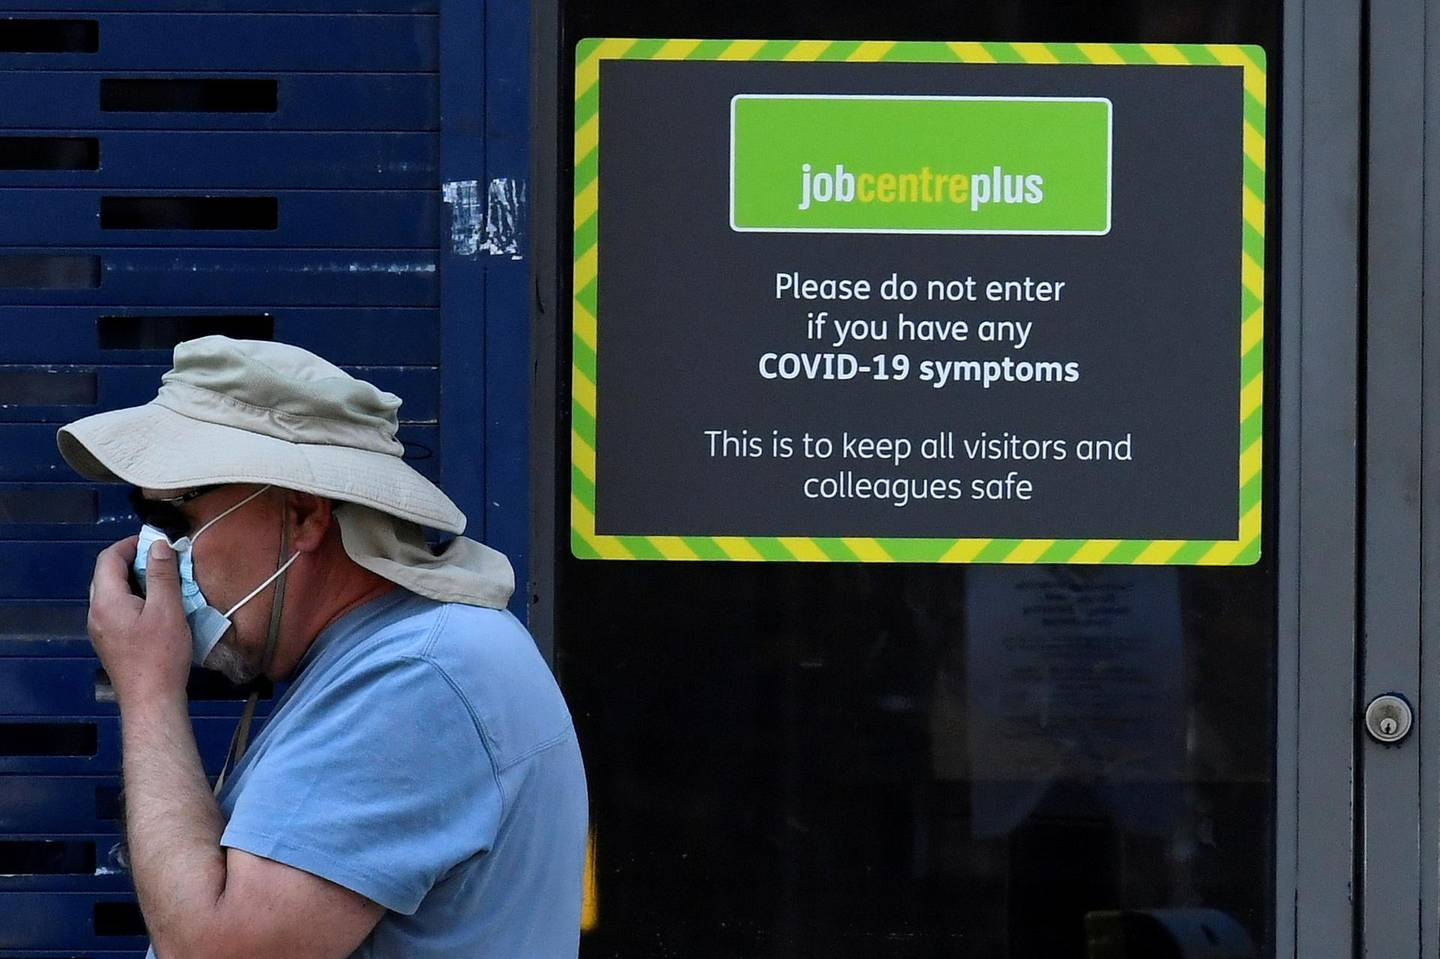 FILE PHOTO: A person wearing a protective face mask walks past a Job Centre Plus office, amidst the outbreak of the coronavirus disease (COVID-19) in London, Britain, August 11, 2020. REUTERS/Toby Melville/File Photo